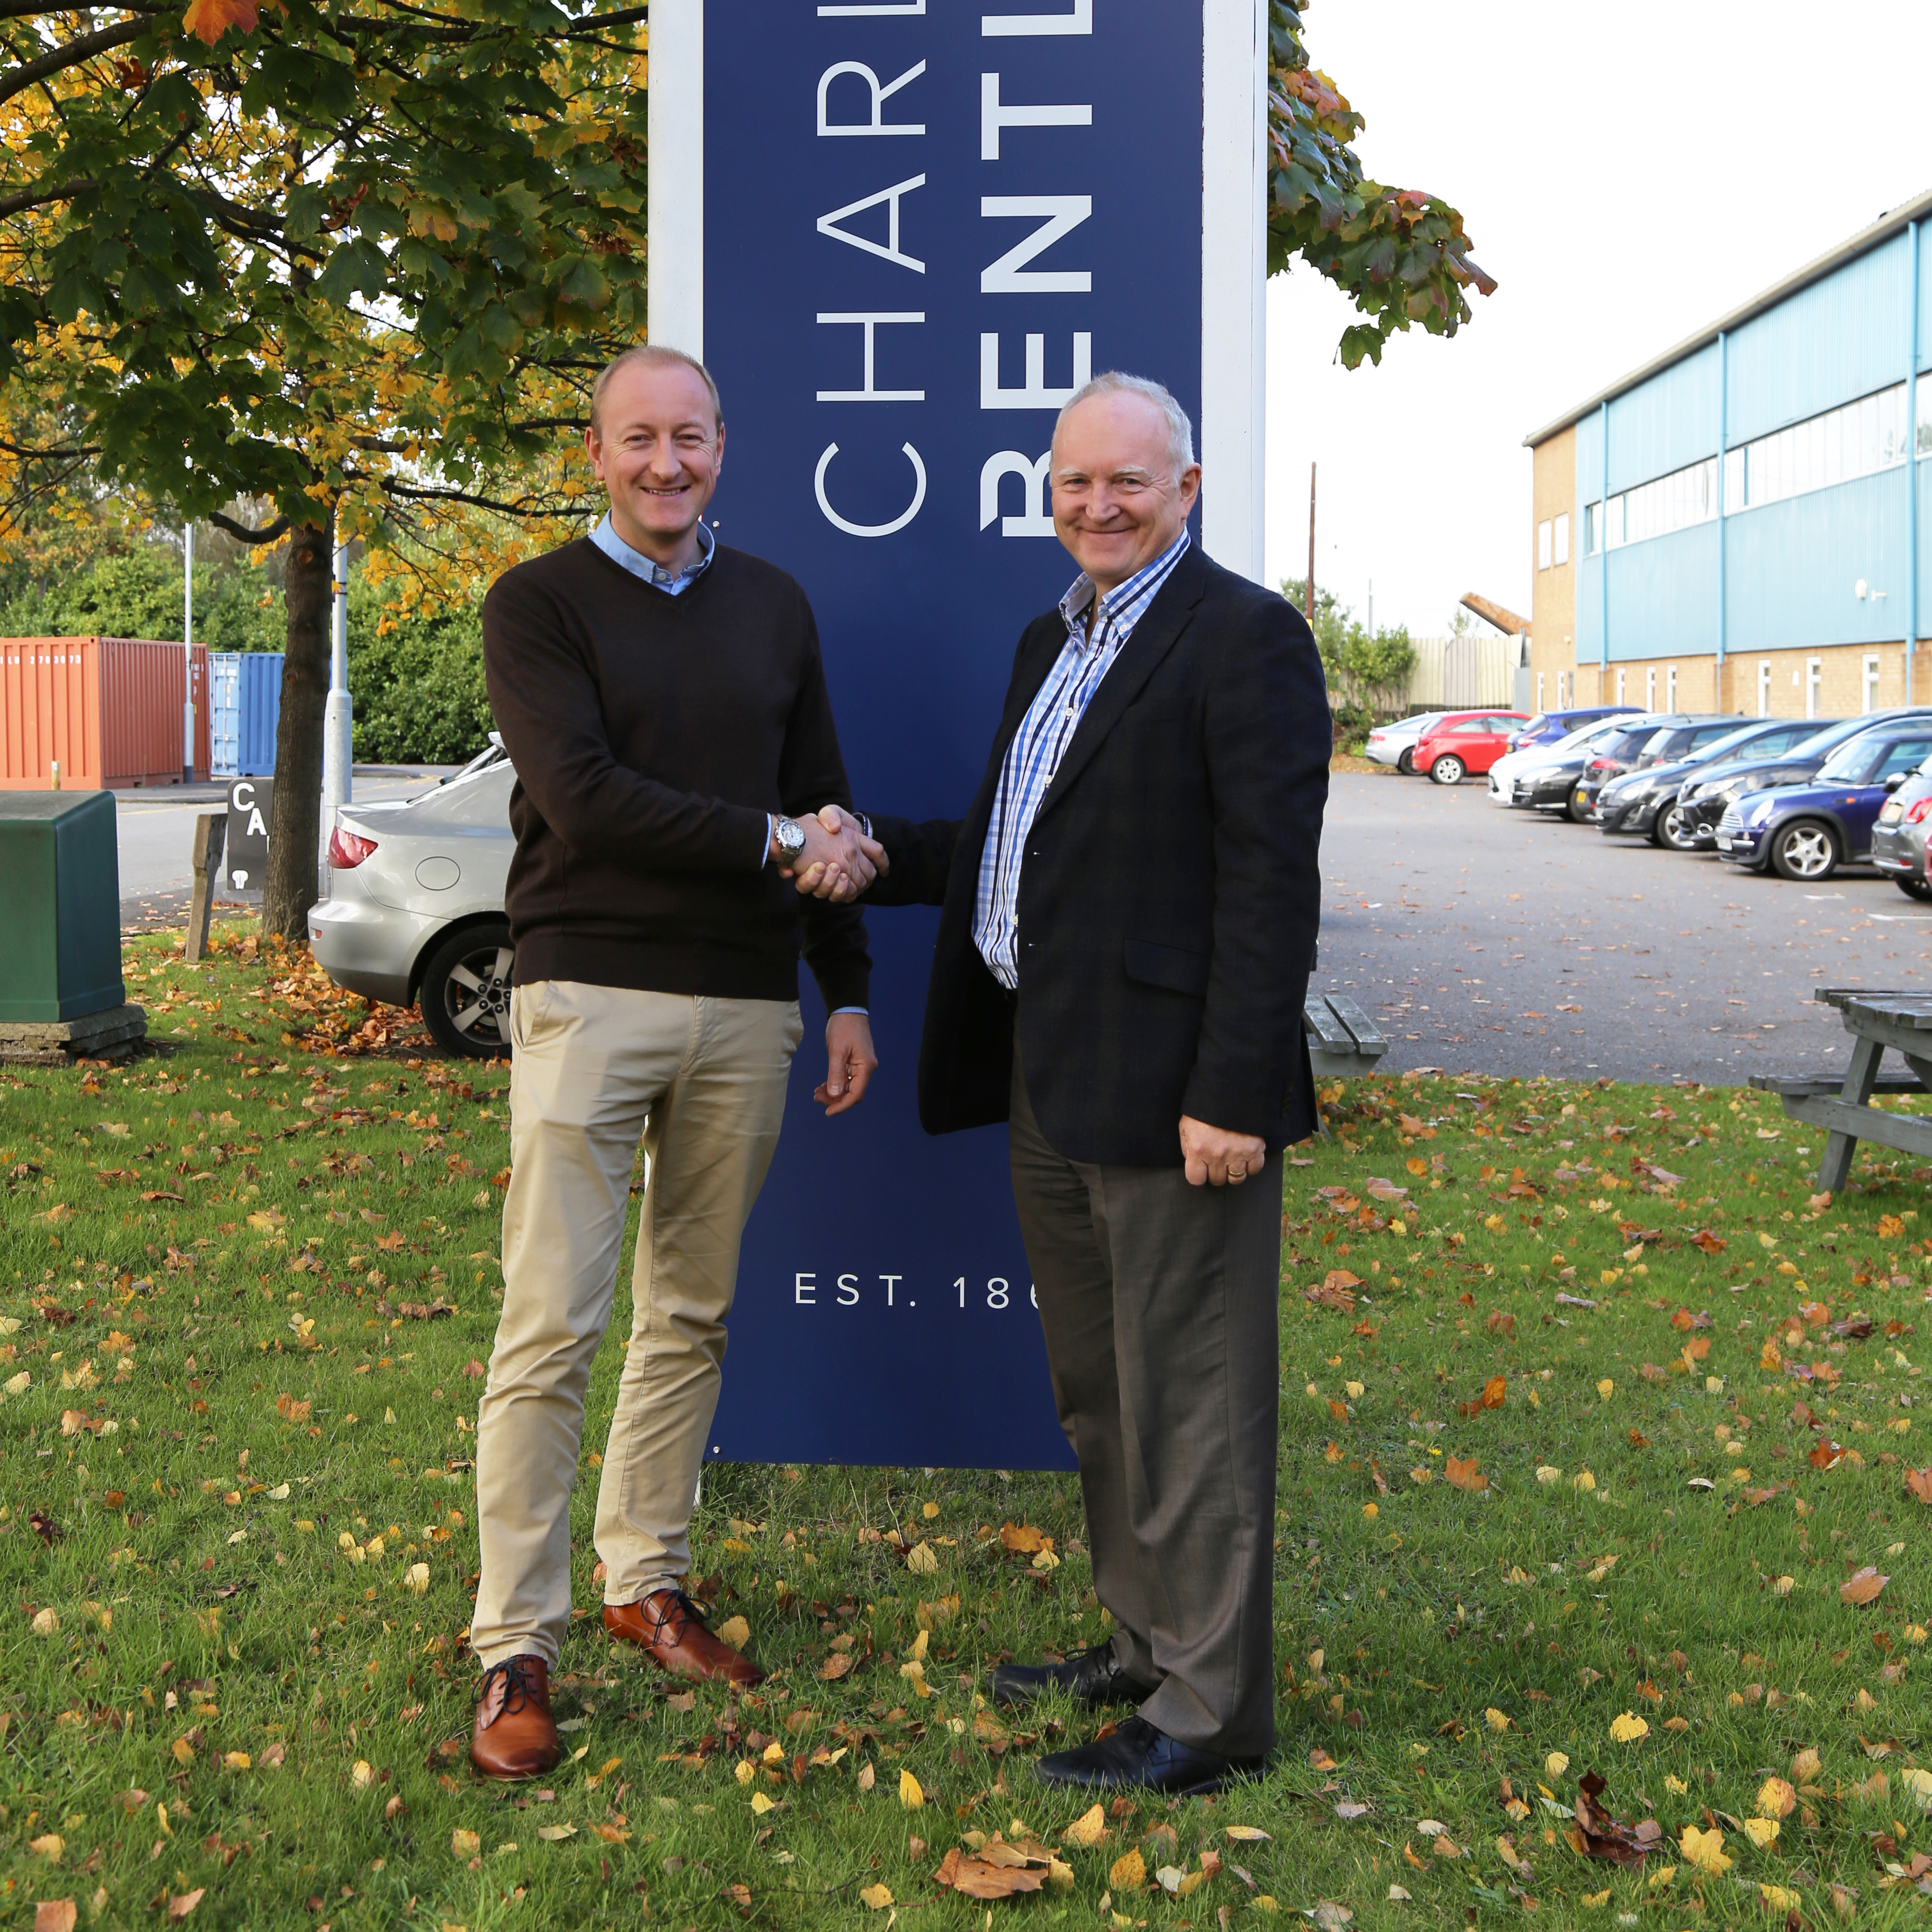 Sixth-generation Loughborough manufacturer declared 'Best Family Business' in Leicestershire business awards